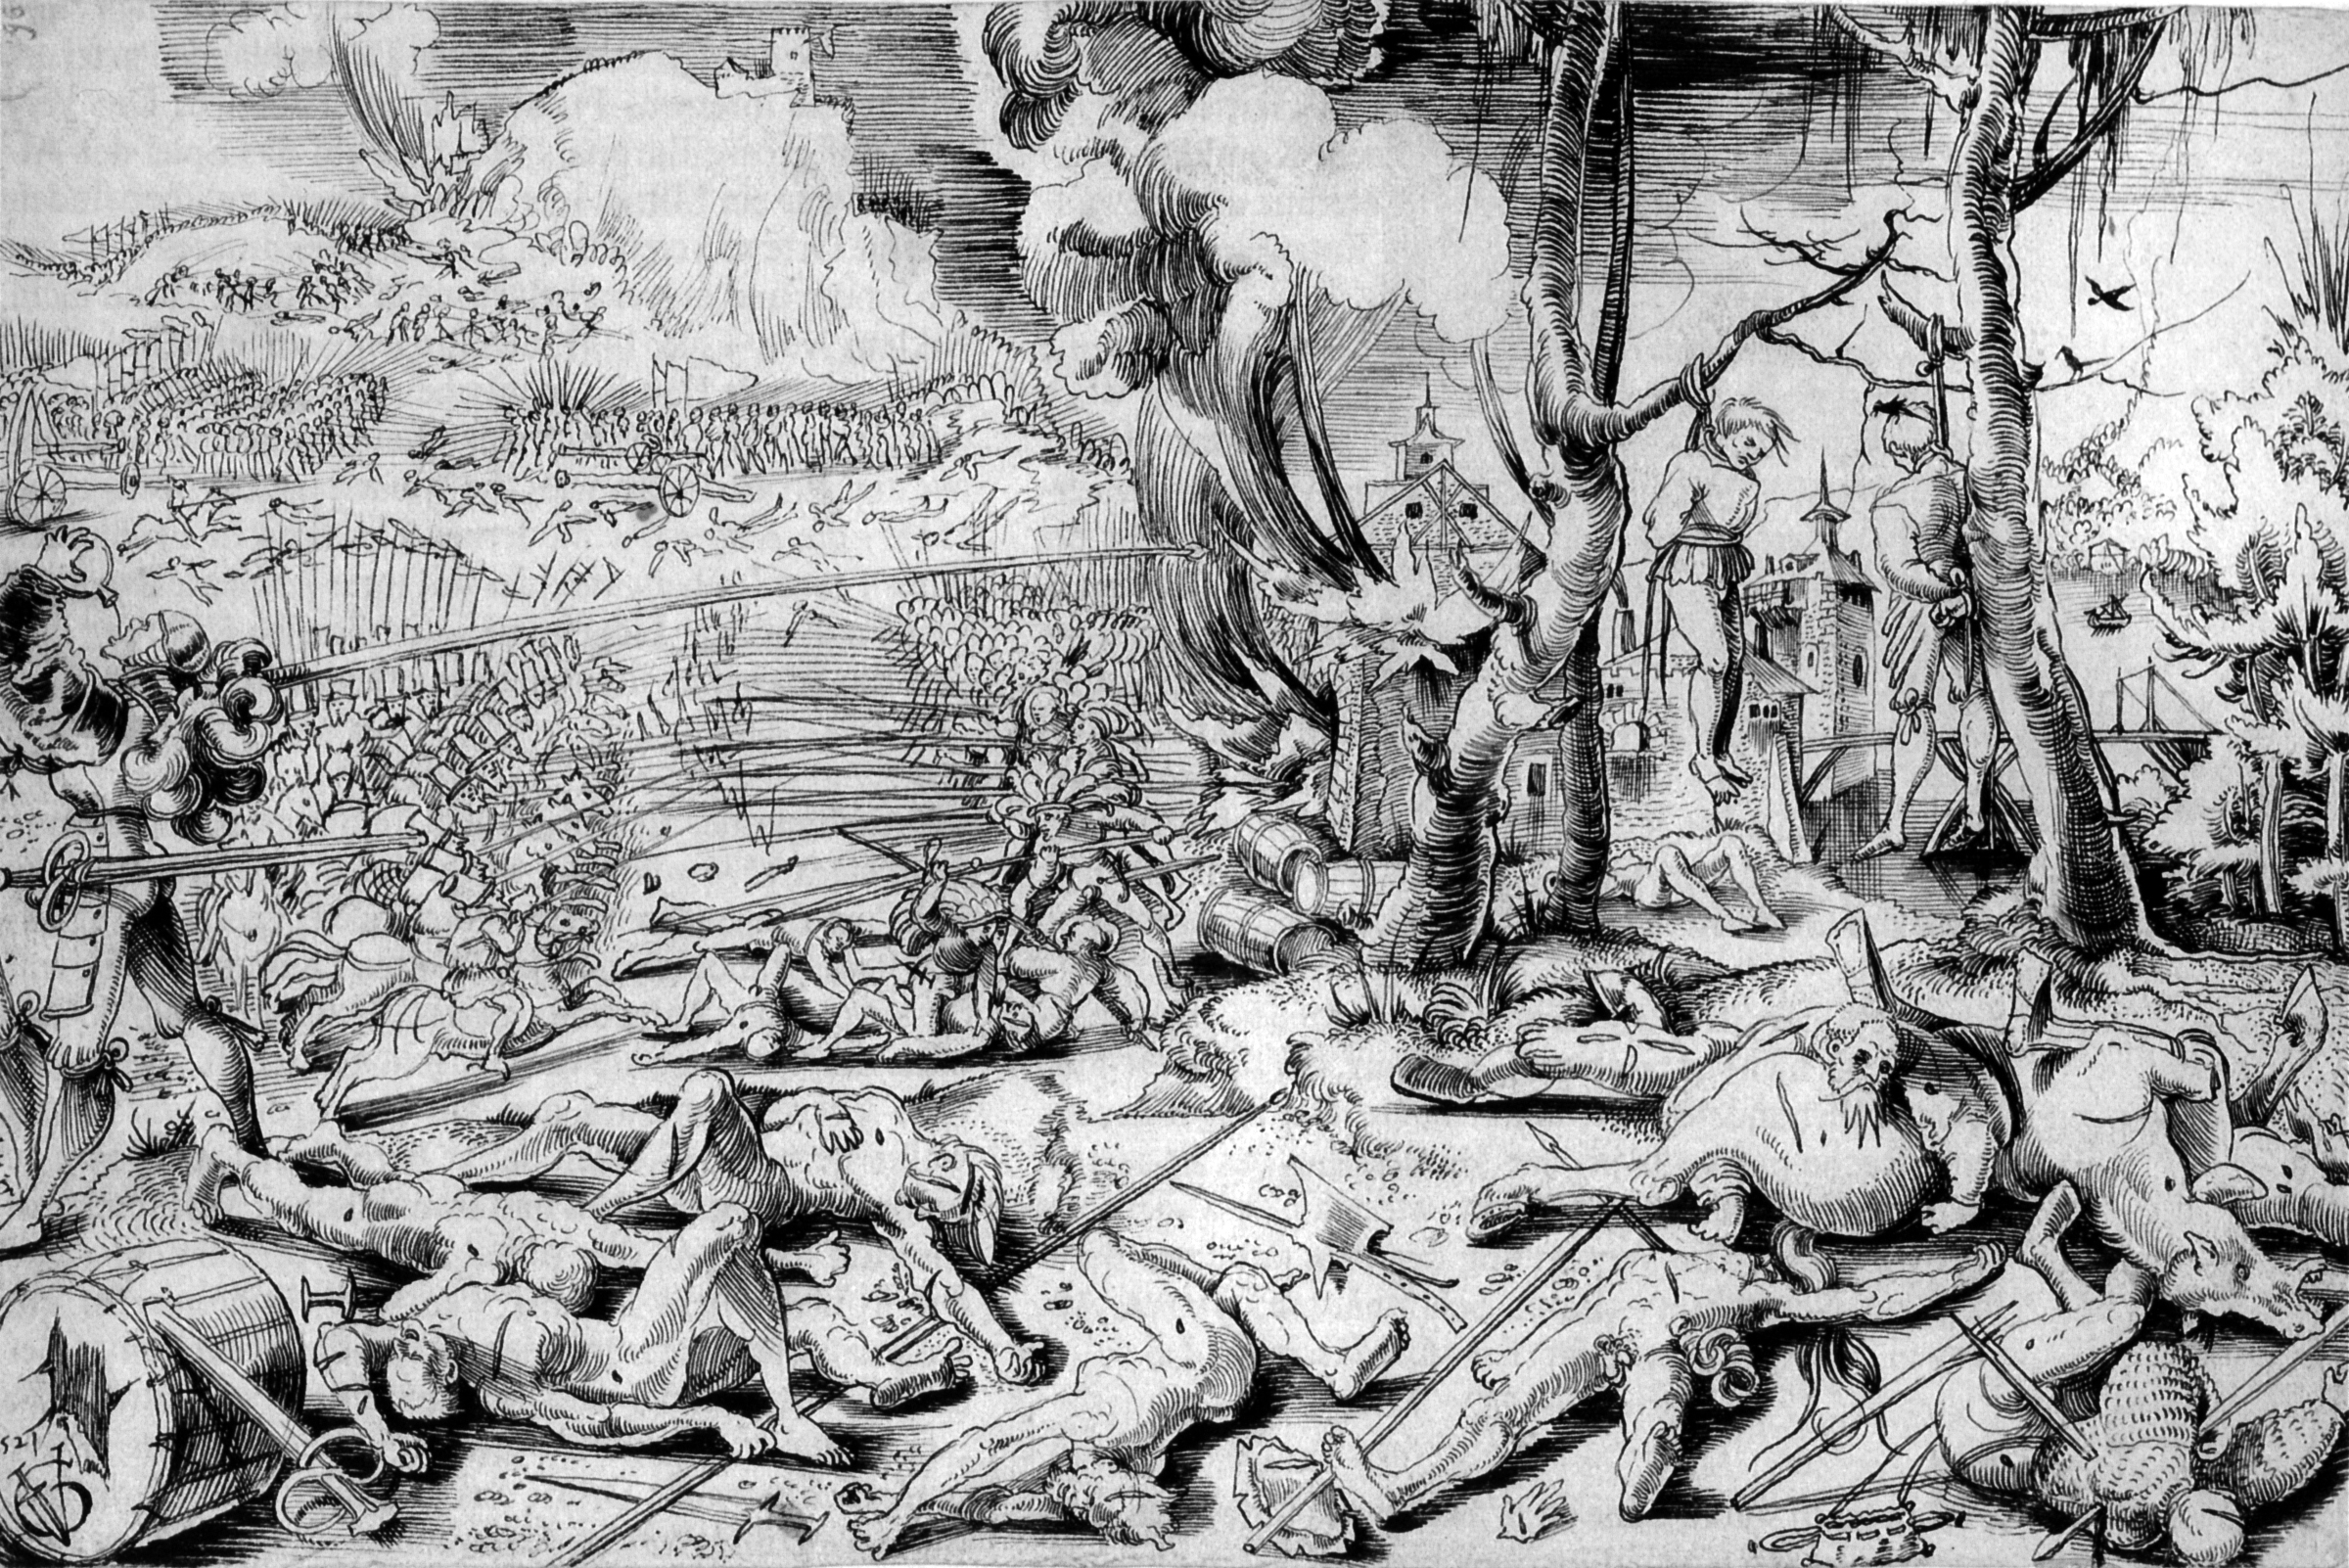 After the Battle of Marignano, drawing by Urs Graf. Almost no one remembers when or why this happened or cares about it.